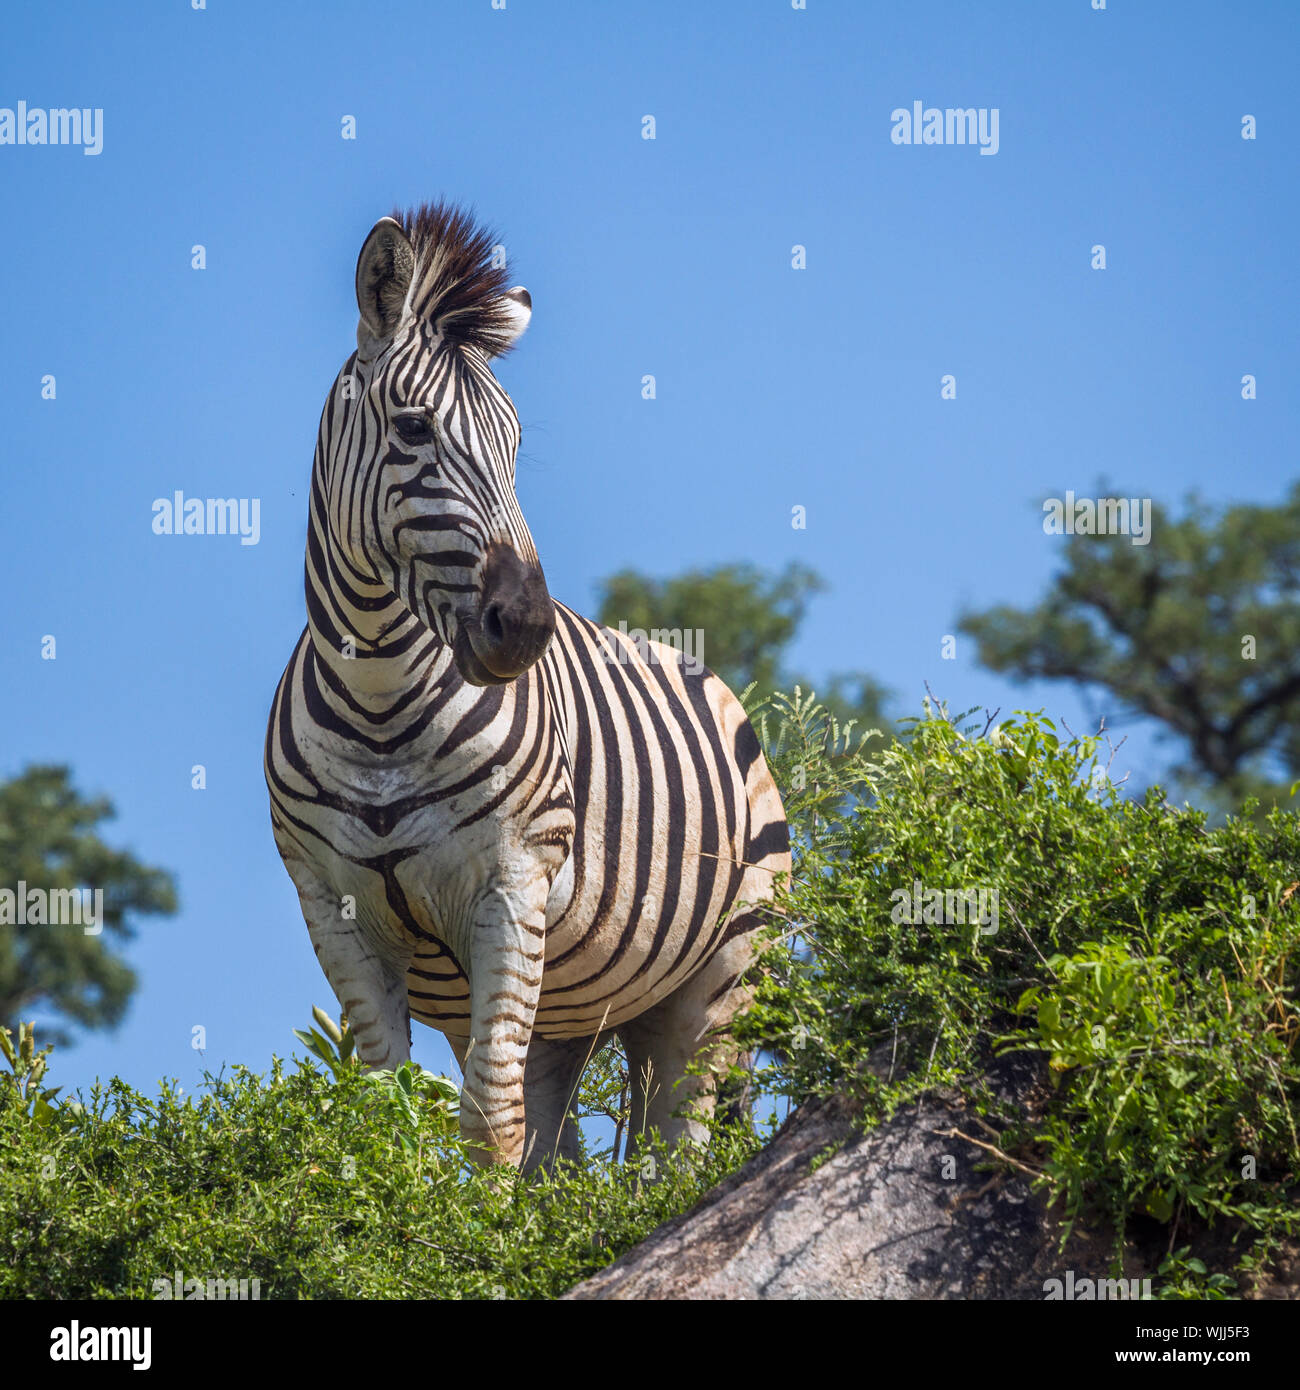 Plains zebra standing on a rock isolated in blue sky in Kruger National park, South Africa ; Specie Equus quagga burchellii family of Equidae Stock Photo